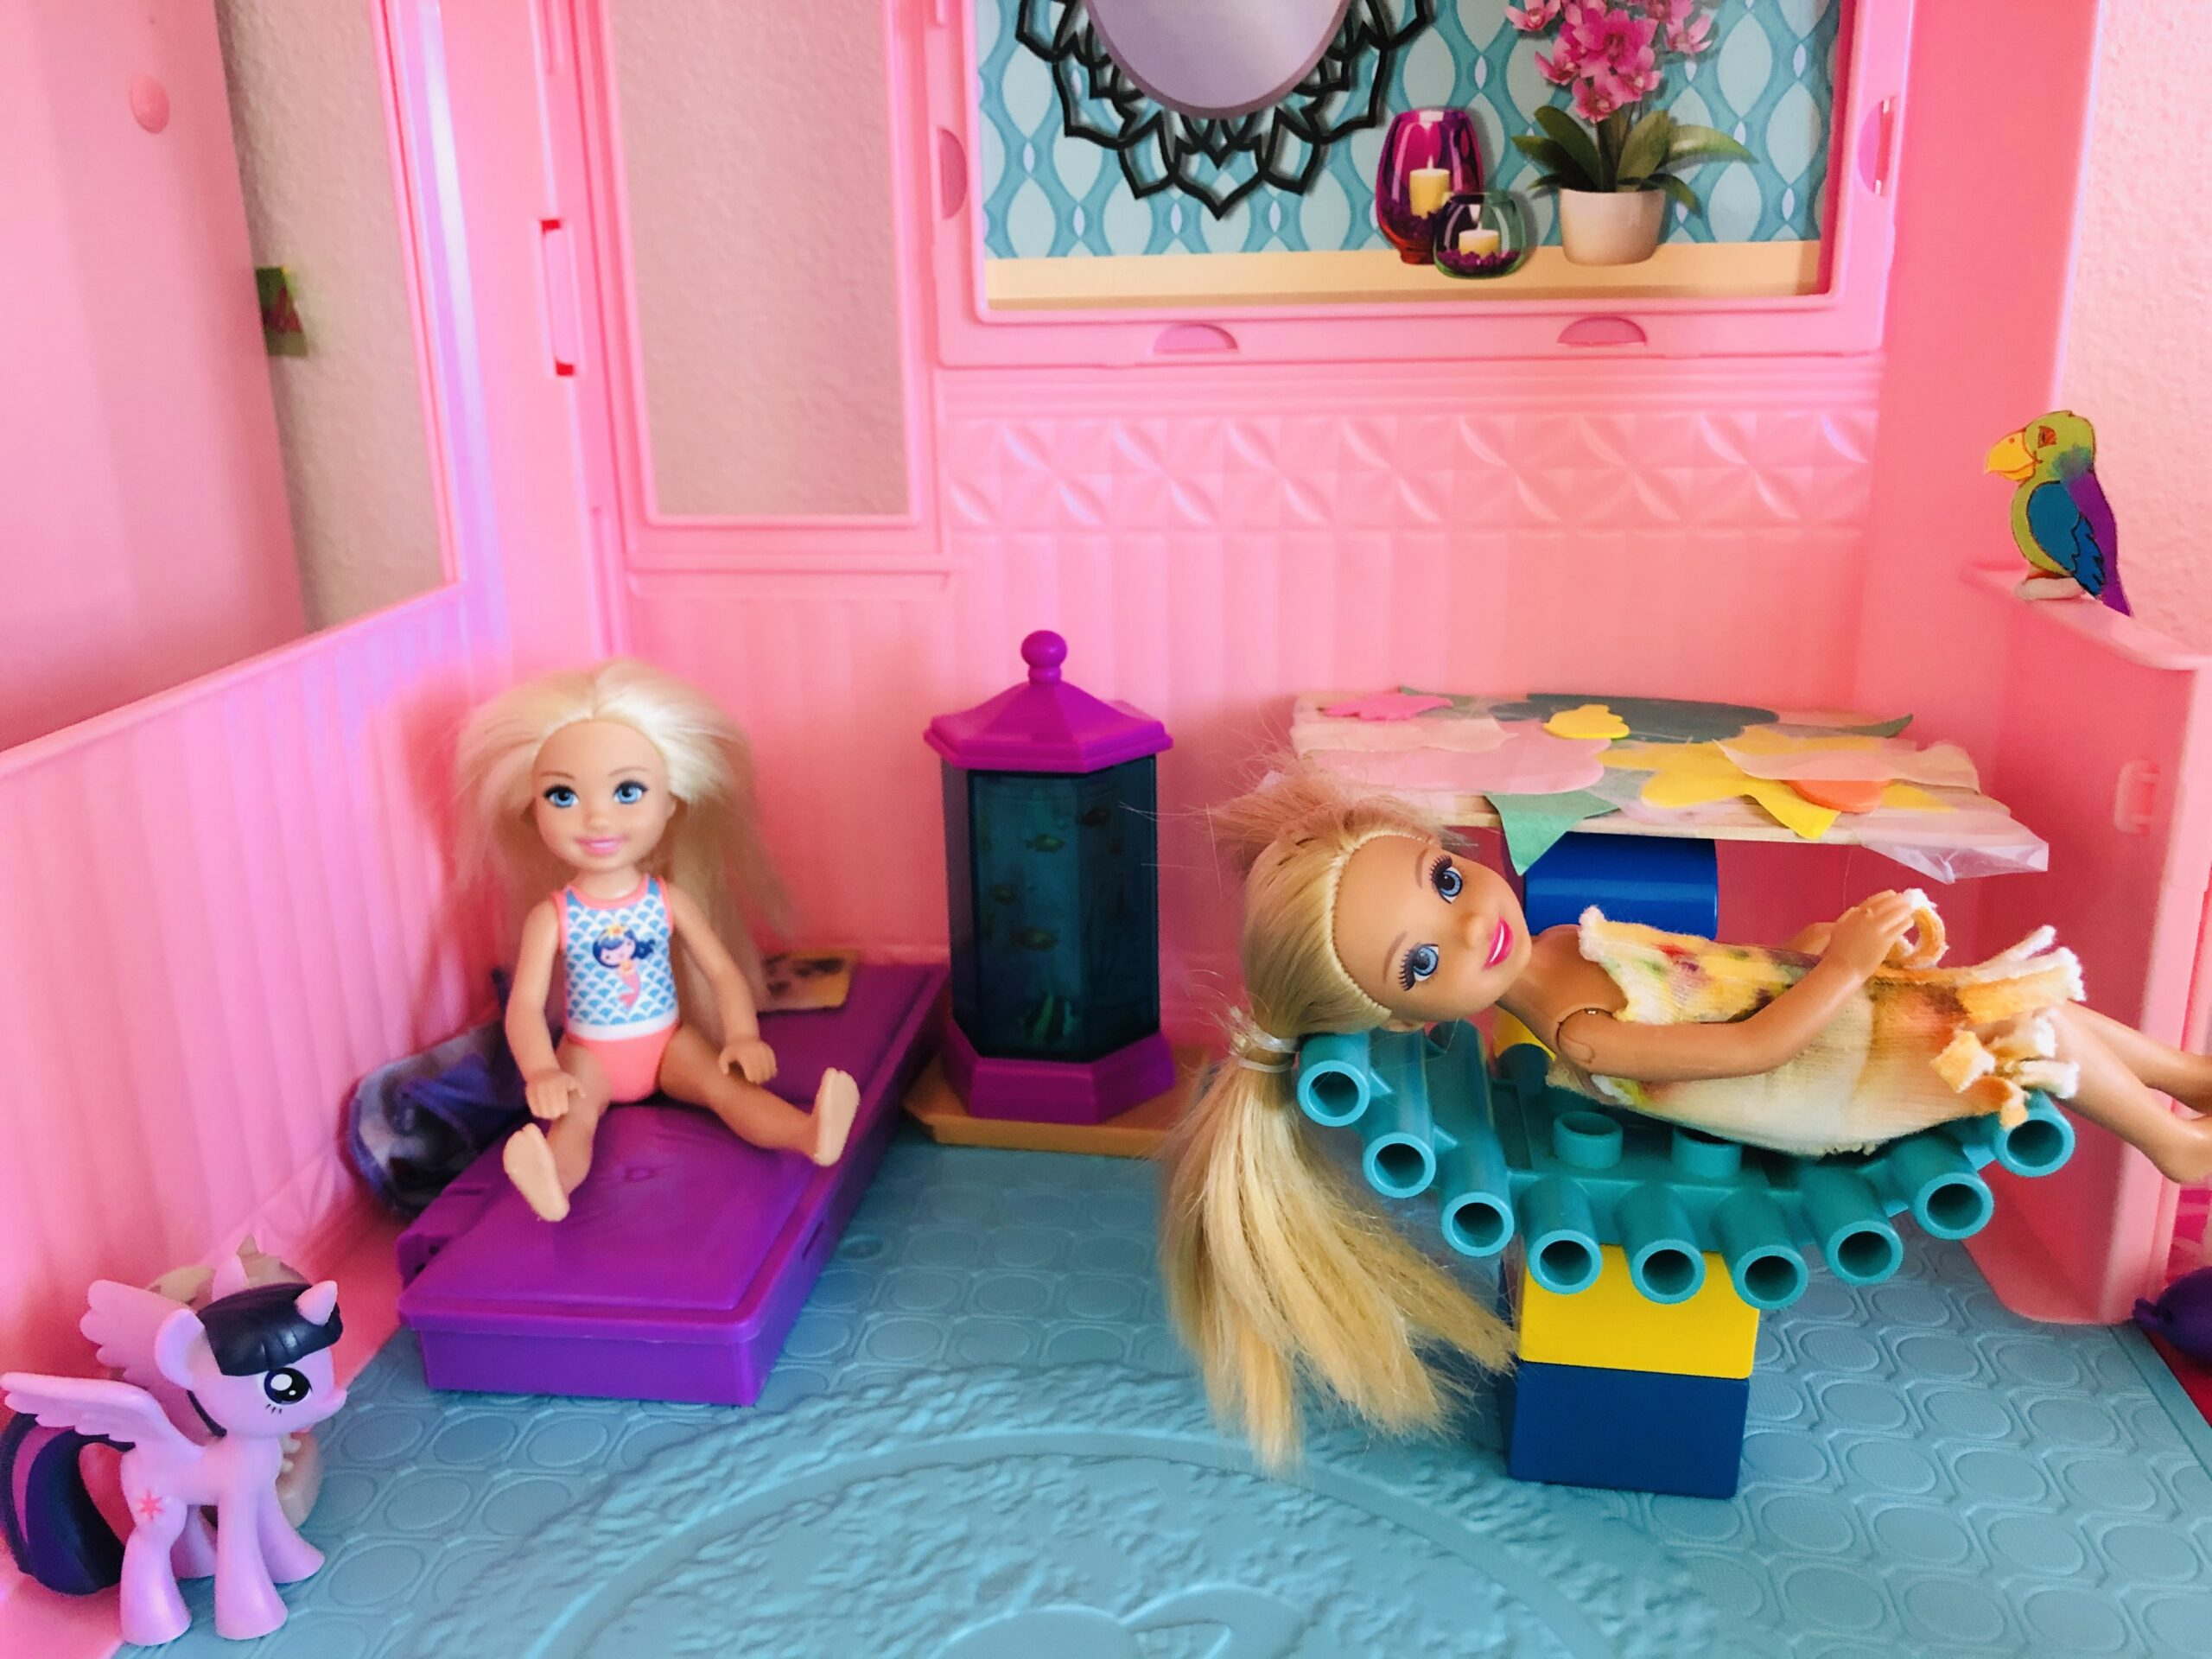 2 Chelsea Dolls, Barbies, in the Barbie Dreamhouse.